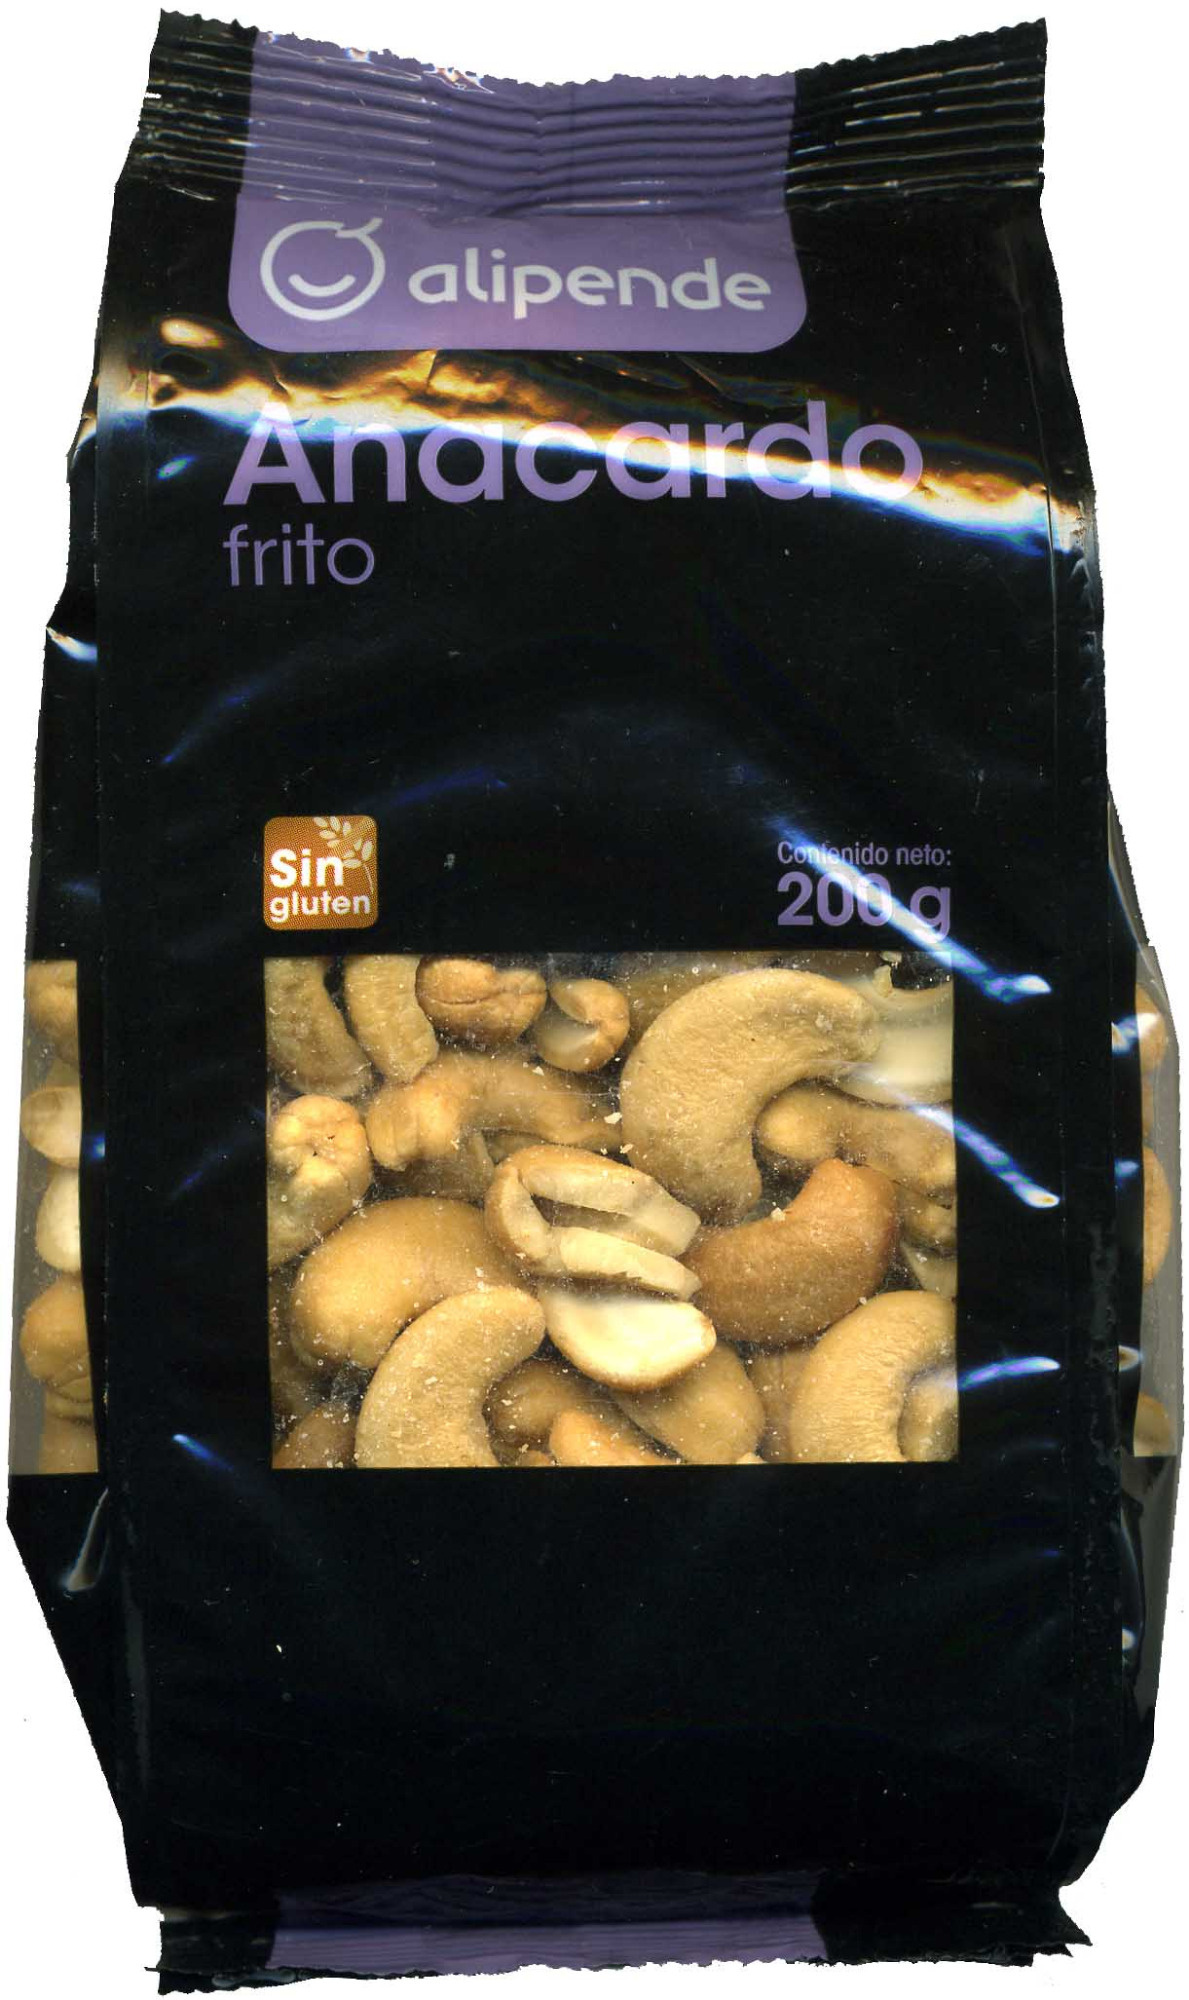 Anacardos fritos - Product